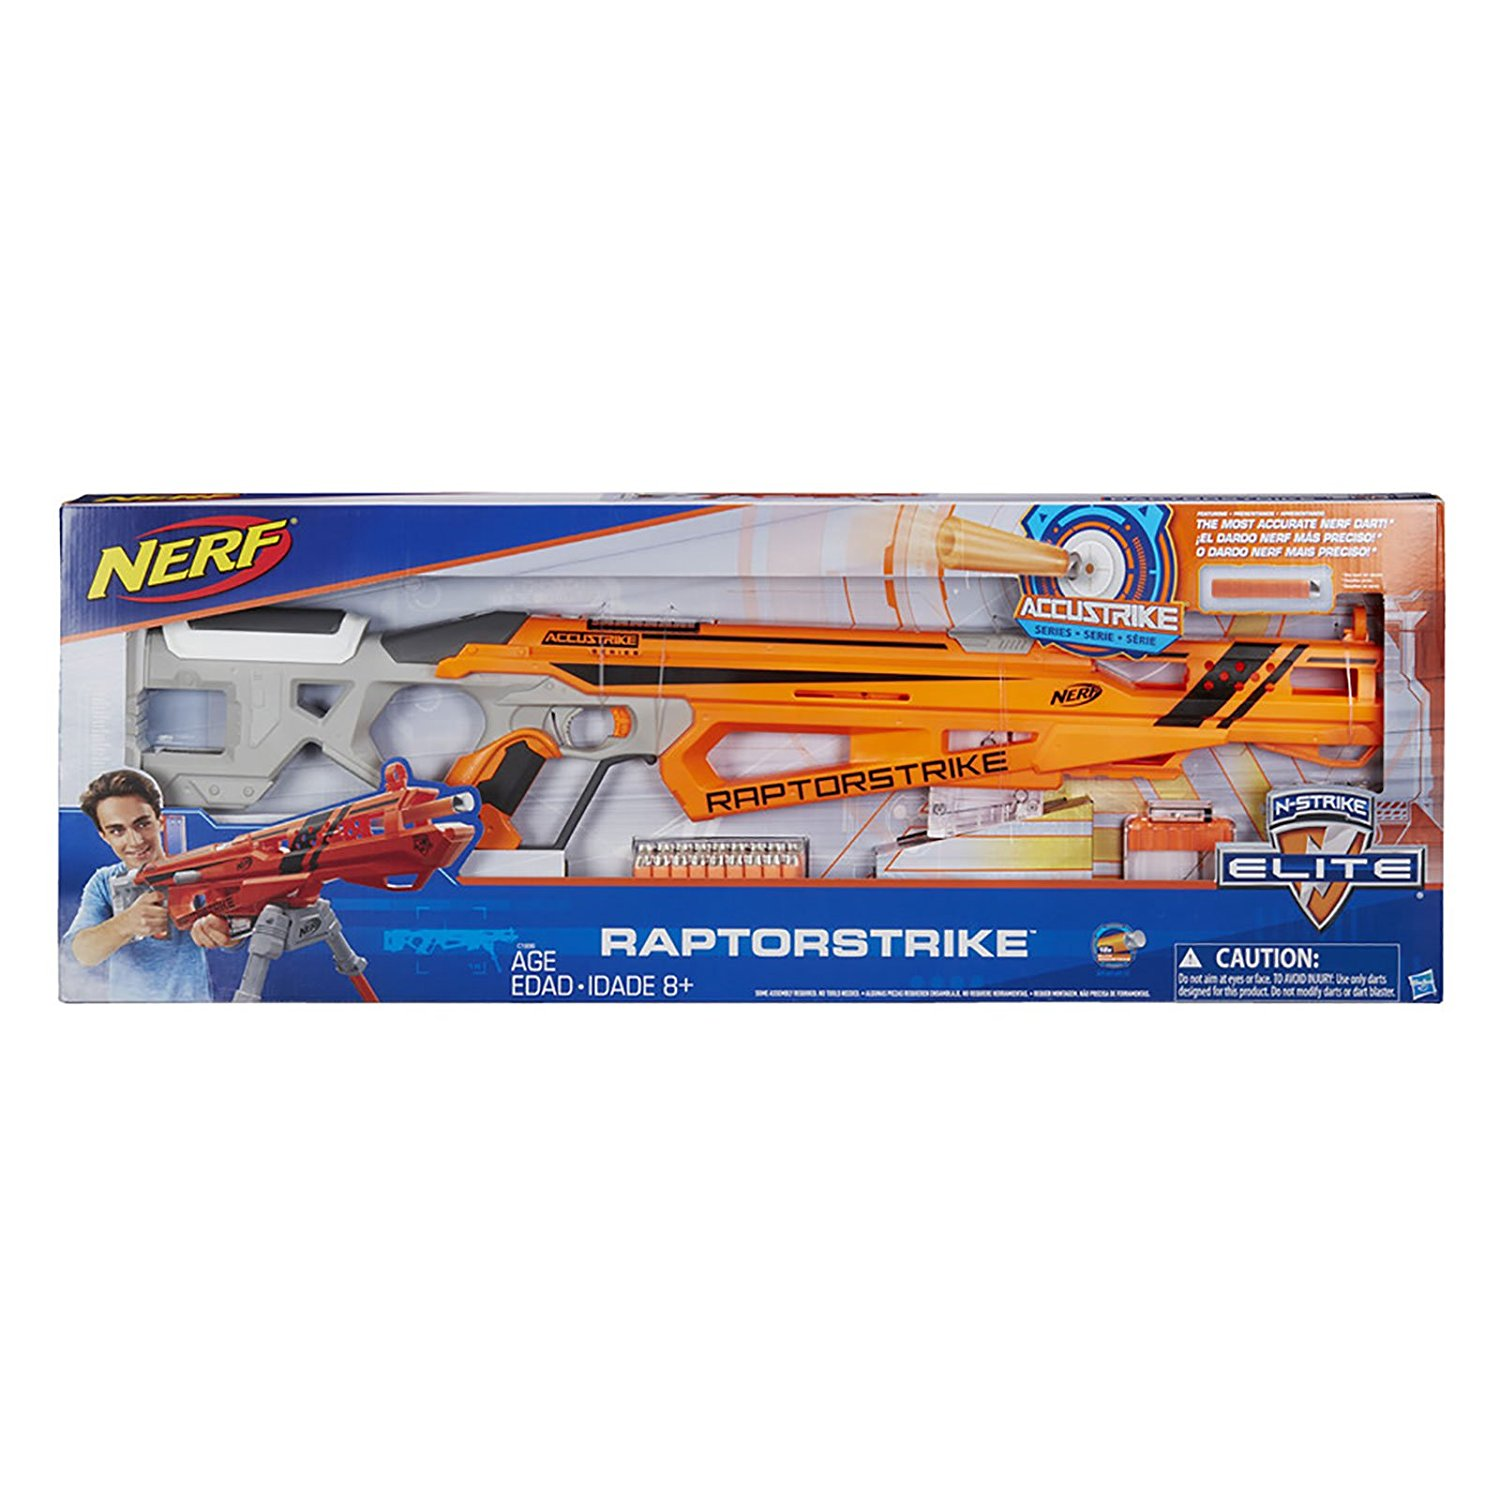 A Guide To The Best Nerf Sniper Rifles 2019 - For Kids and Big Kids